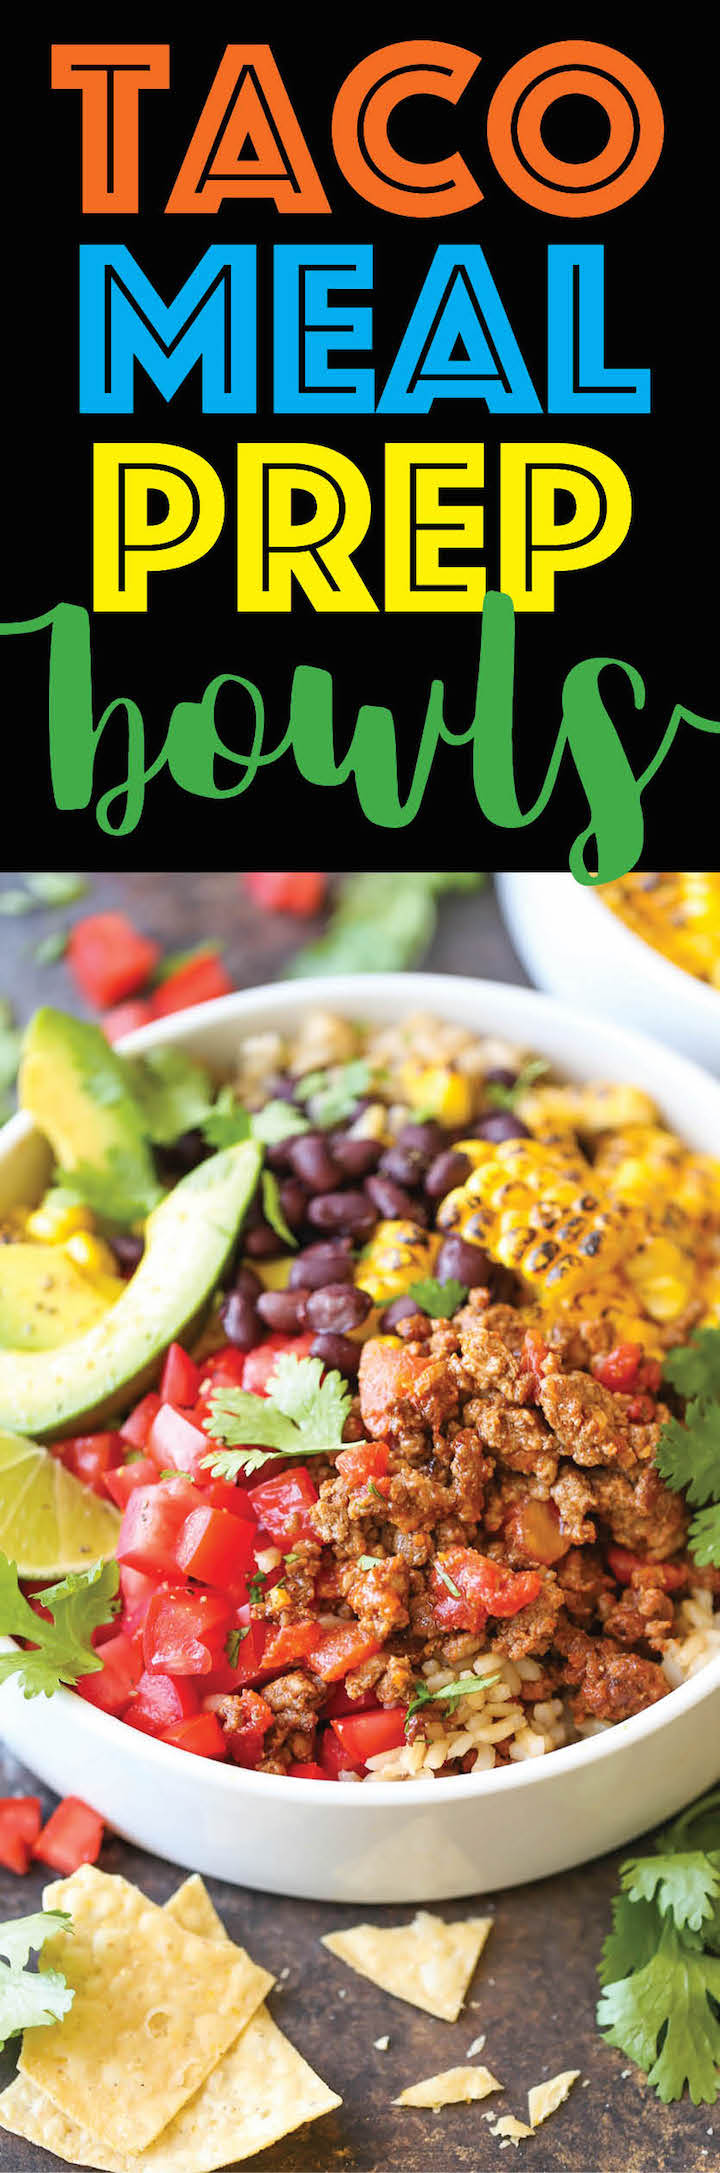 Taco Meal Prep Bowls -Meal prep for the entire week with these healthy Mexican bowls. This saves you money, time, calories – you honestly can't beat that!